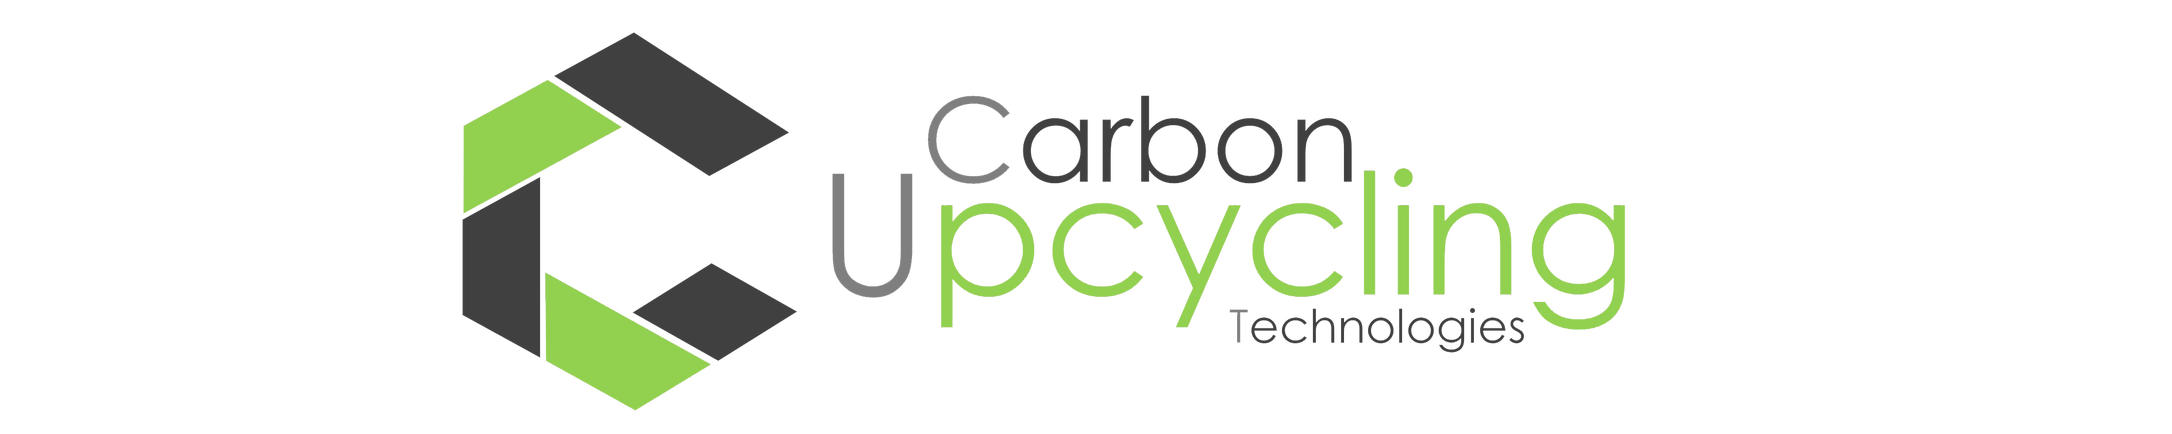 Logo Carbon Upcycling Technologies